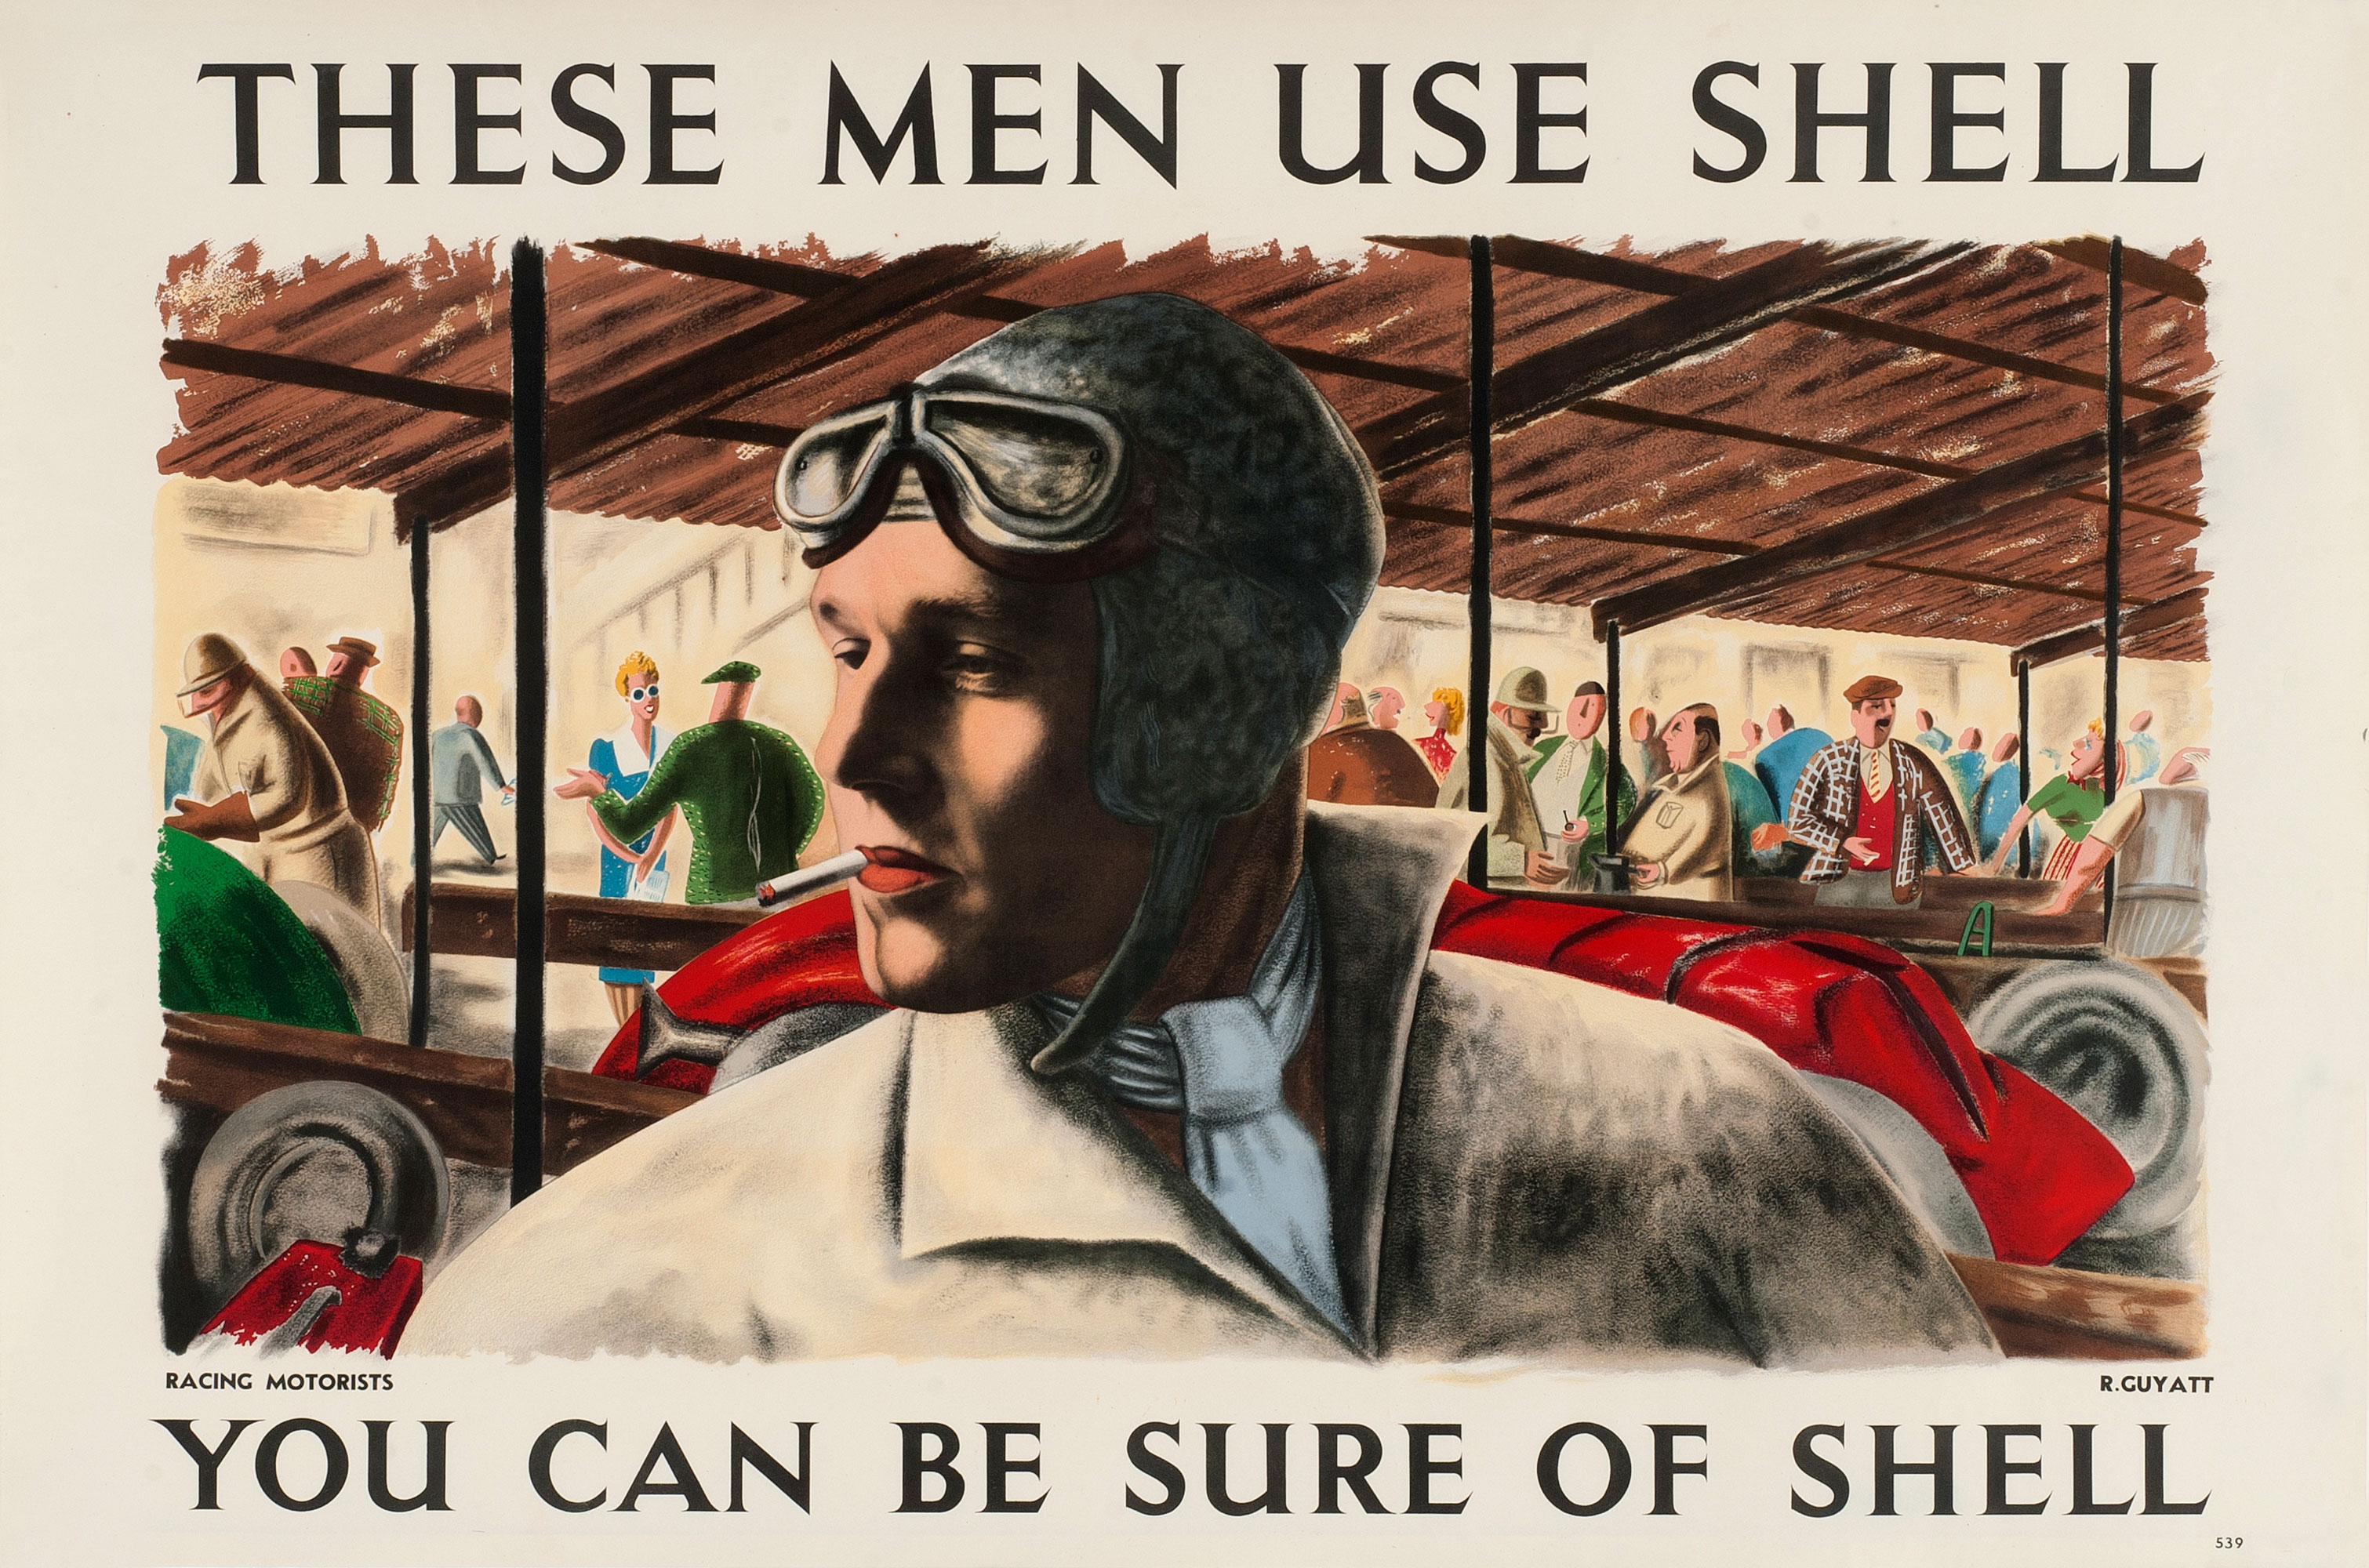 Shell poster number 539, Racing Motorists (1939) by Richard Guyatt. Painting of a racing driver (head and shoulders) smoking a cigarette, with crowd in background.